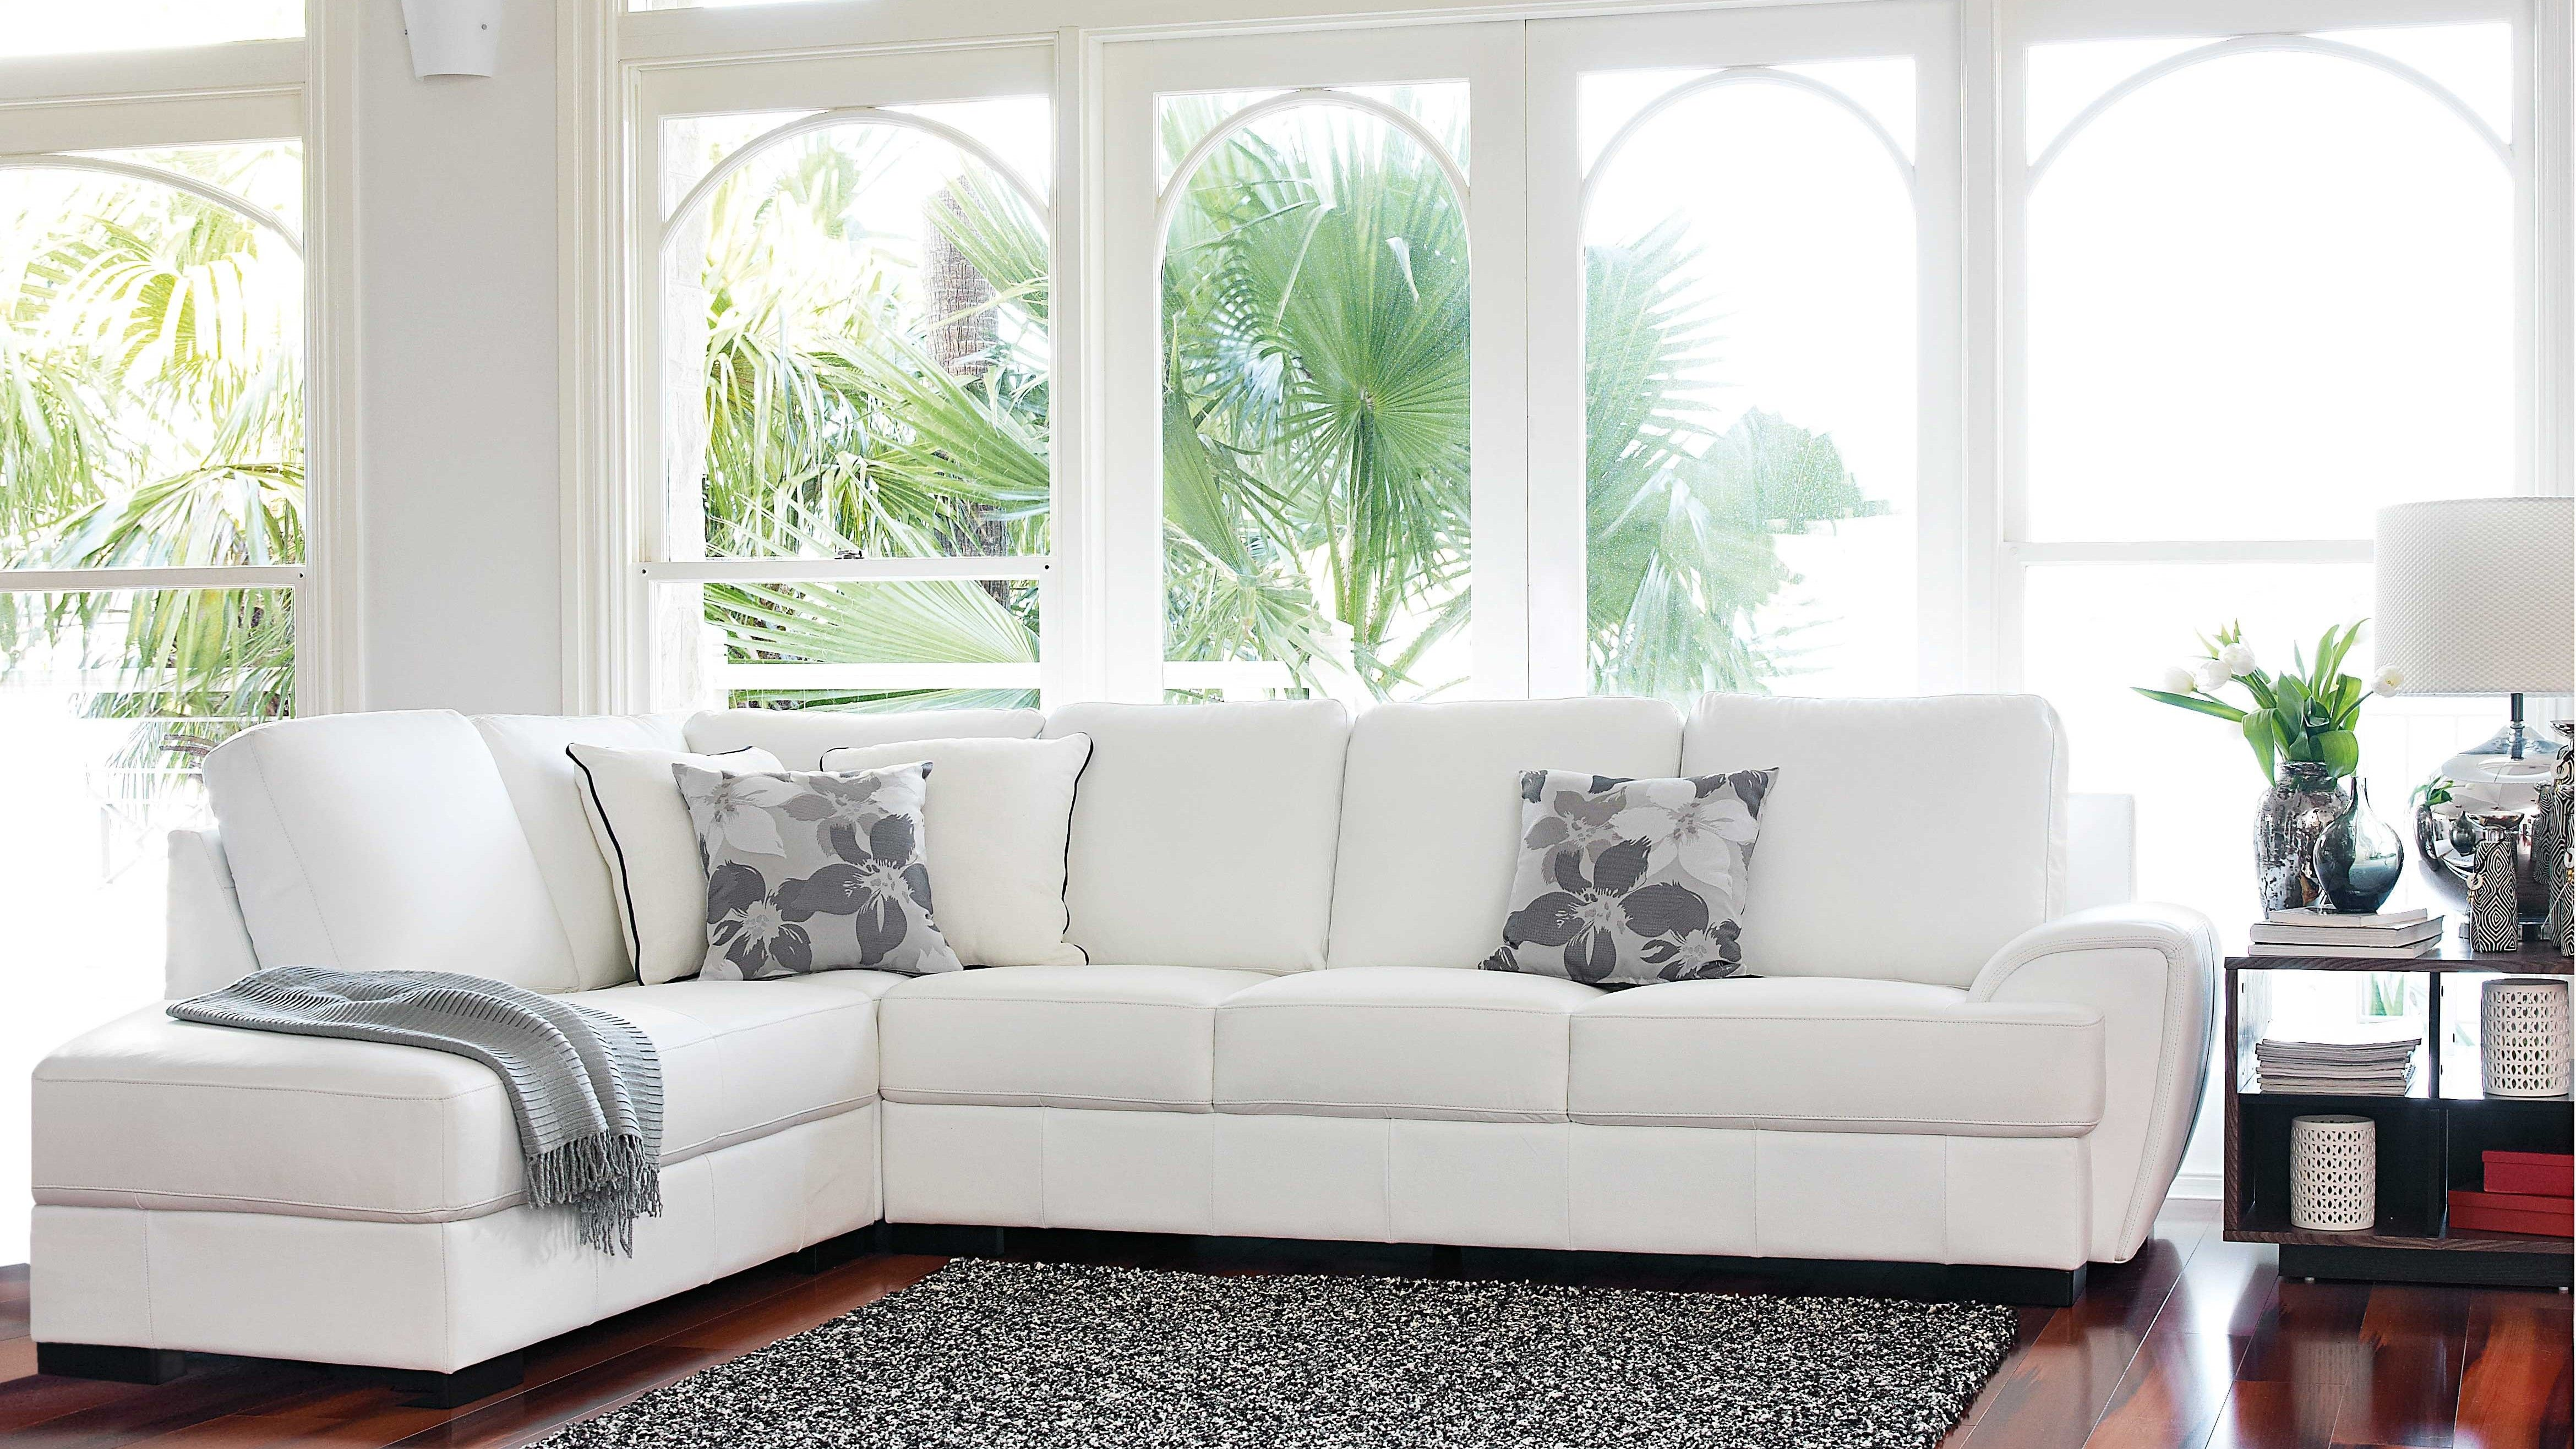 Tristan Modular Leather Lounge white lounge with grey